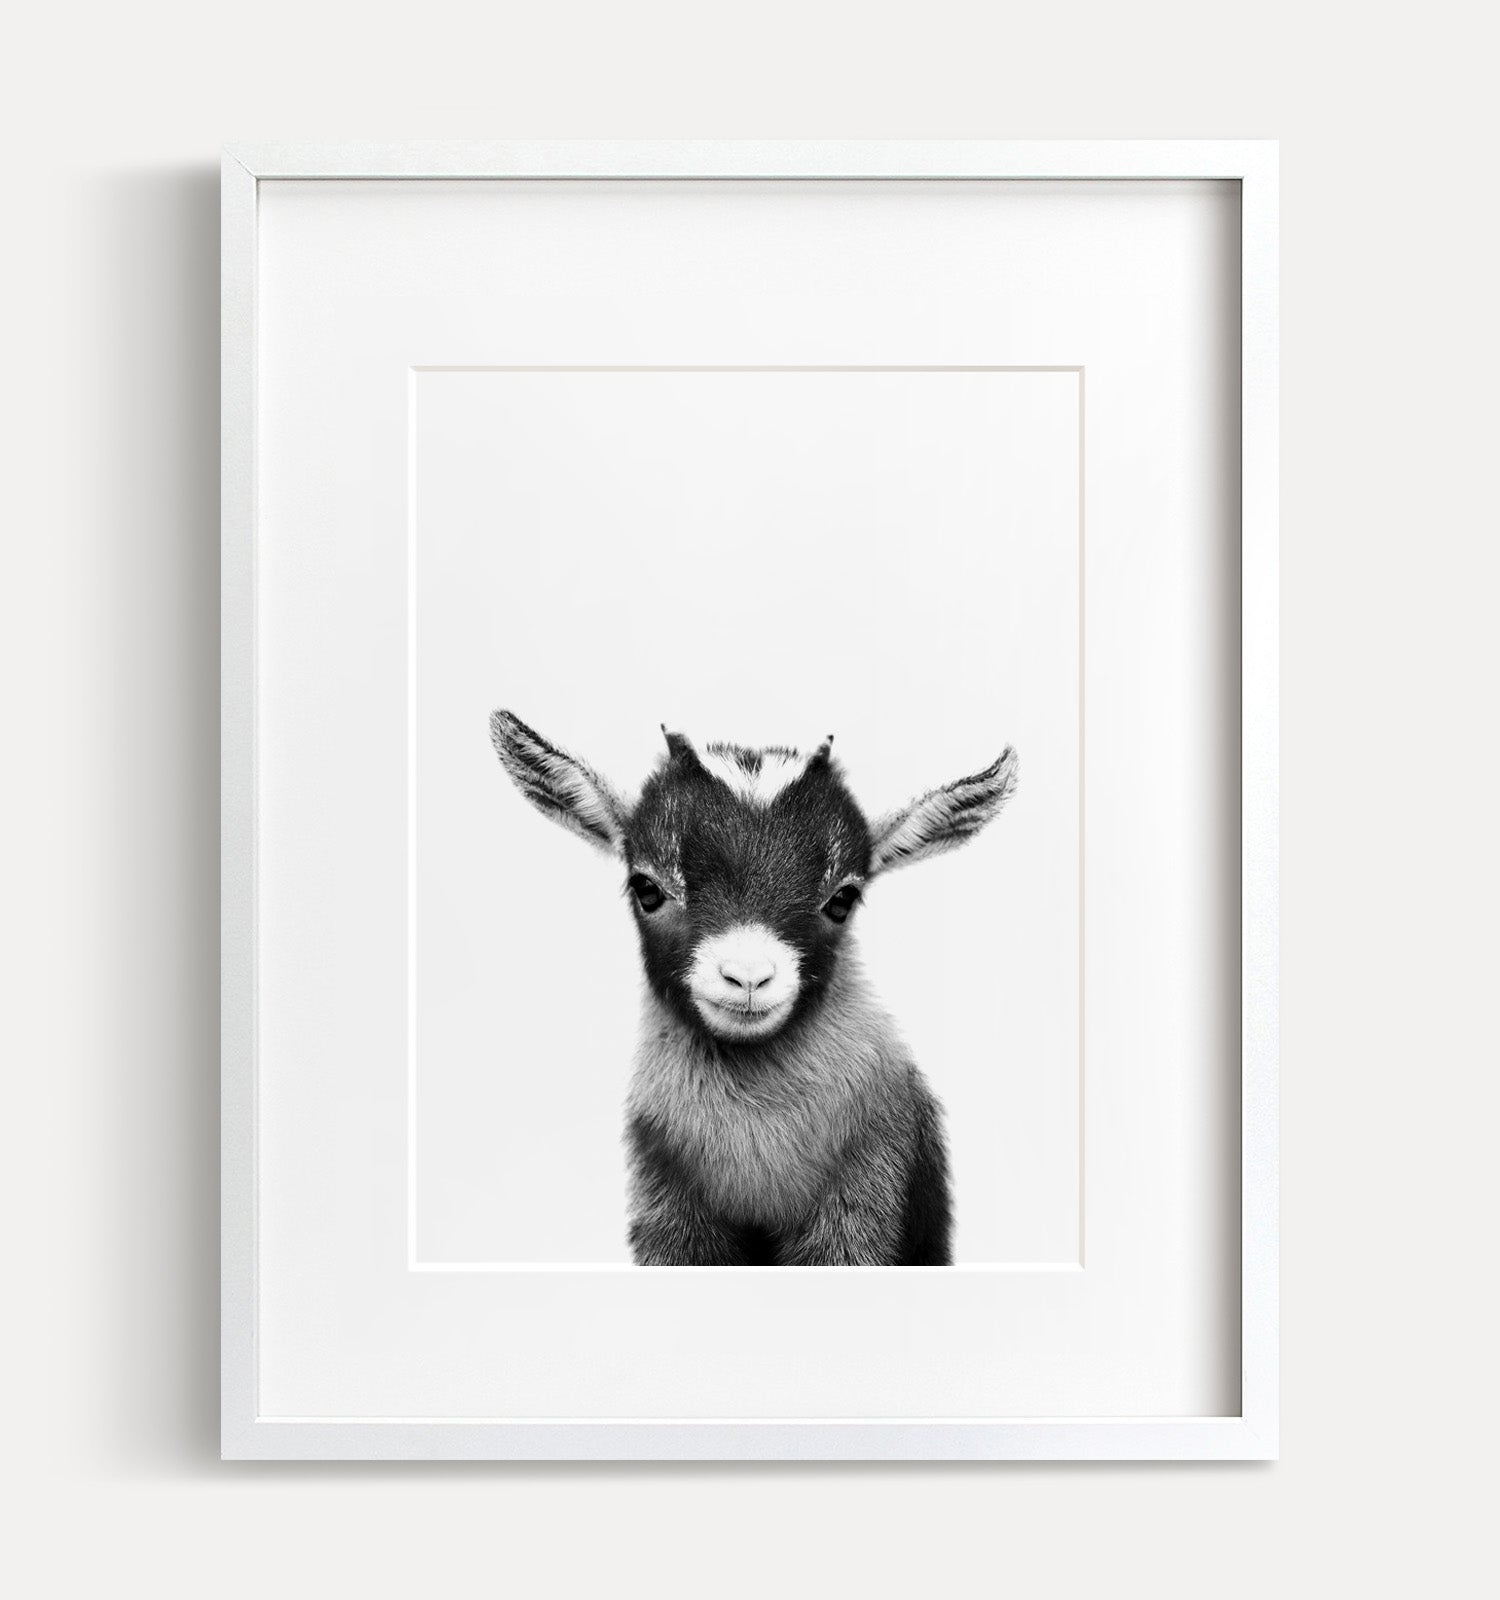 Baby Goat Printable Art - Black and White